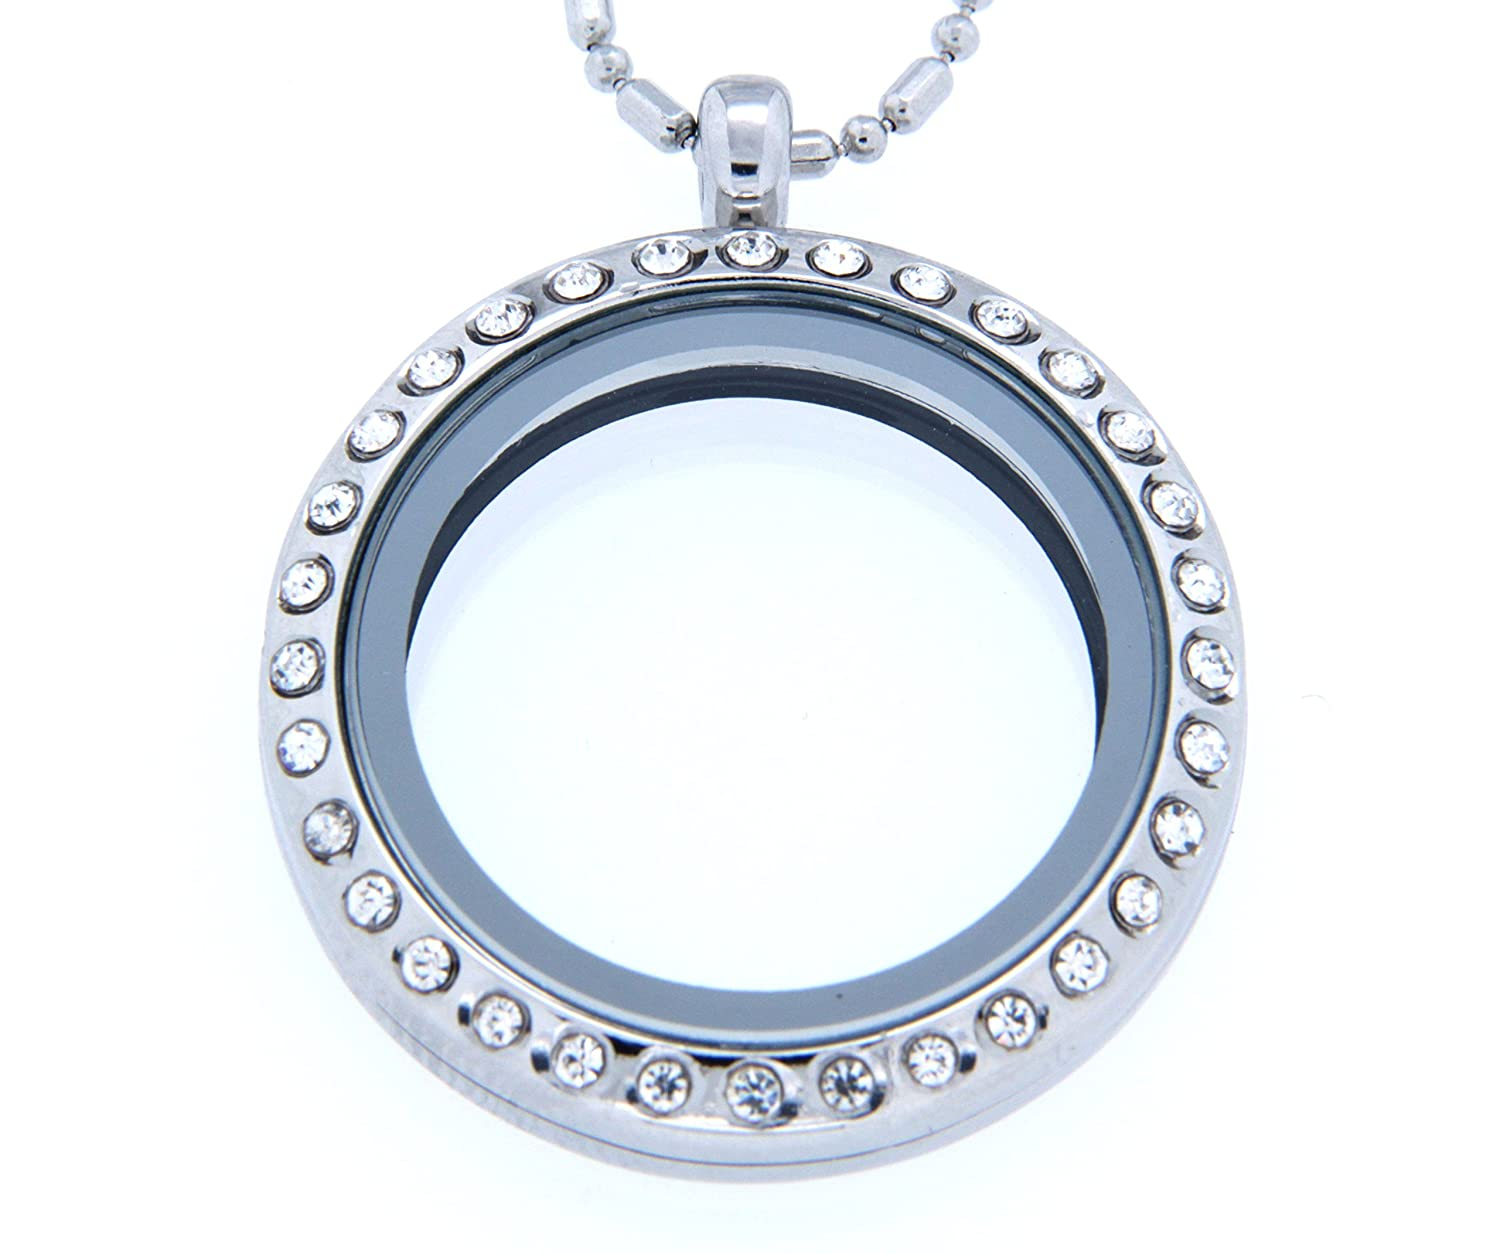 products silver antique bezel lockets brass round accessories finished photo of verycharms pcs